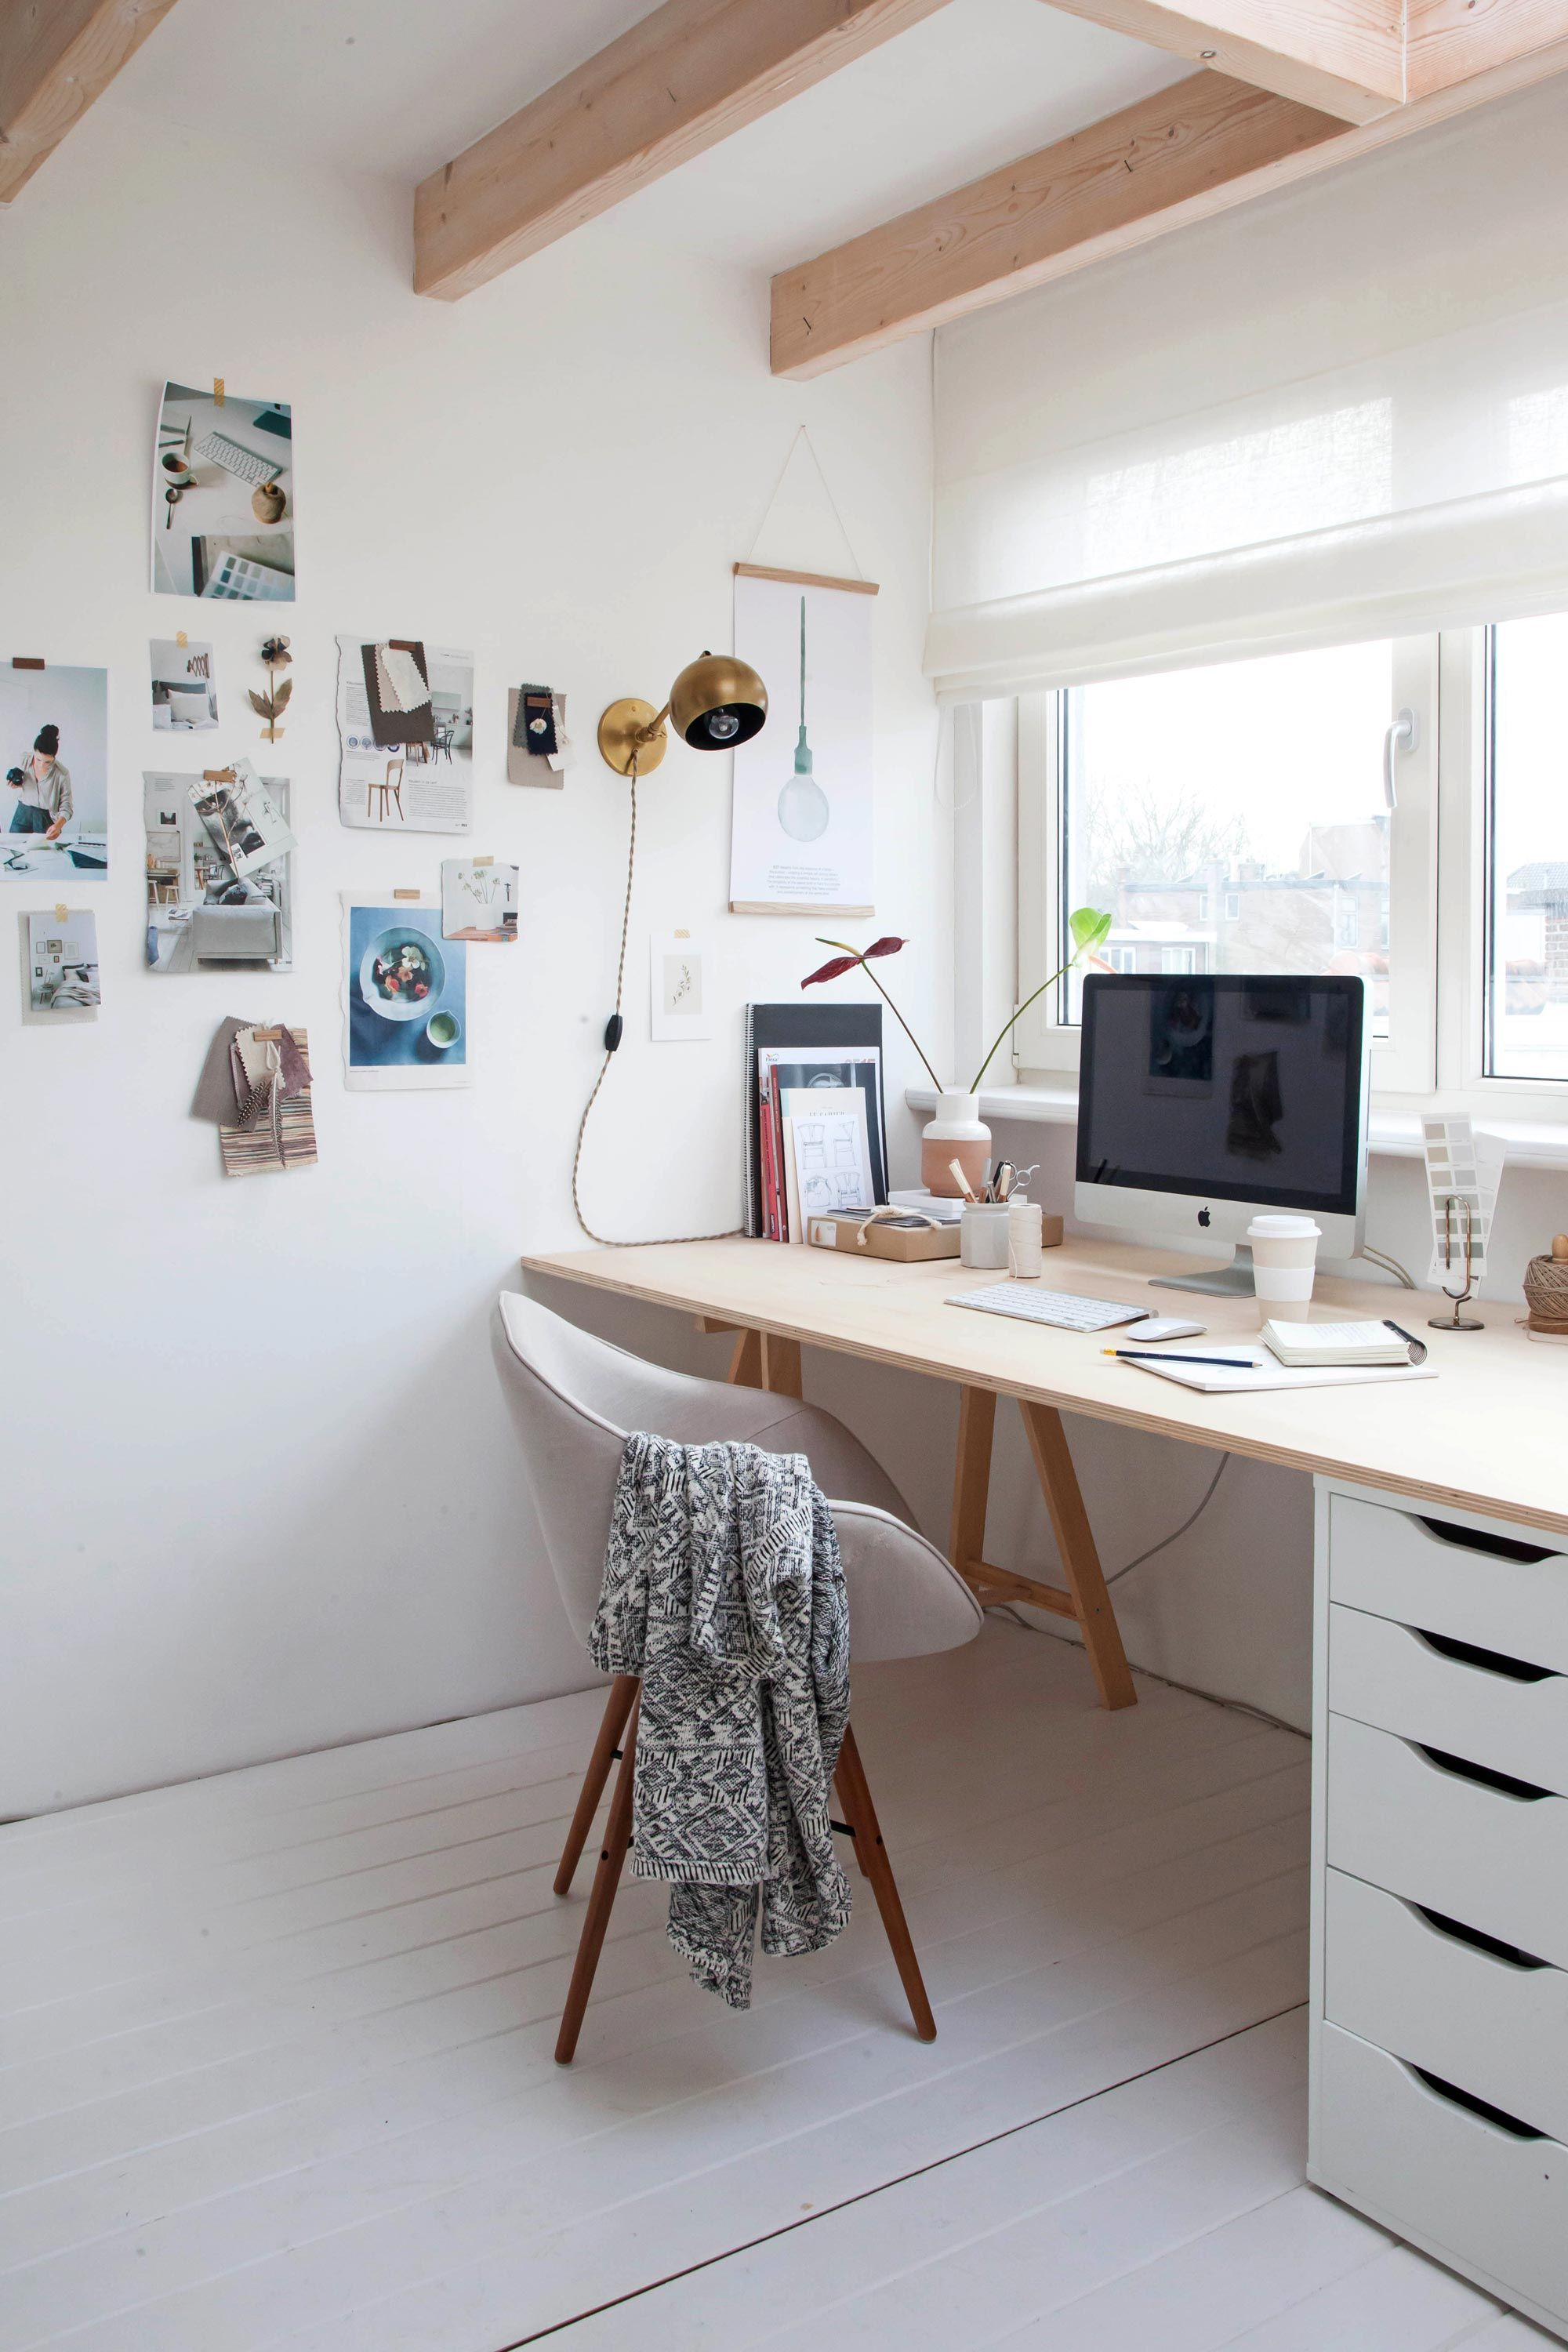 vtwonen blogazine | Houses I could live in - offices | Pinterest ...